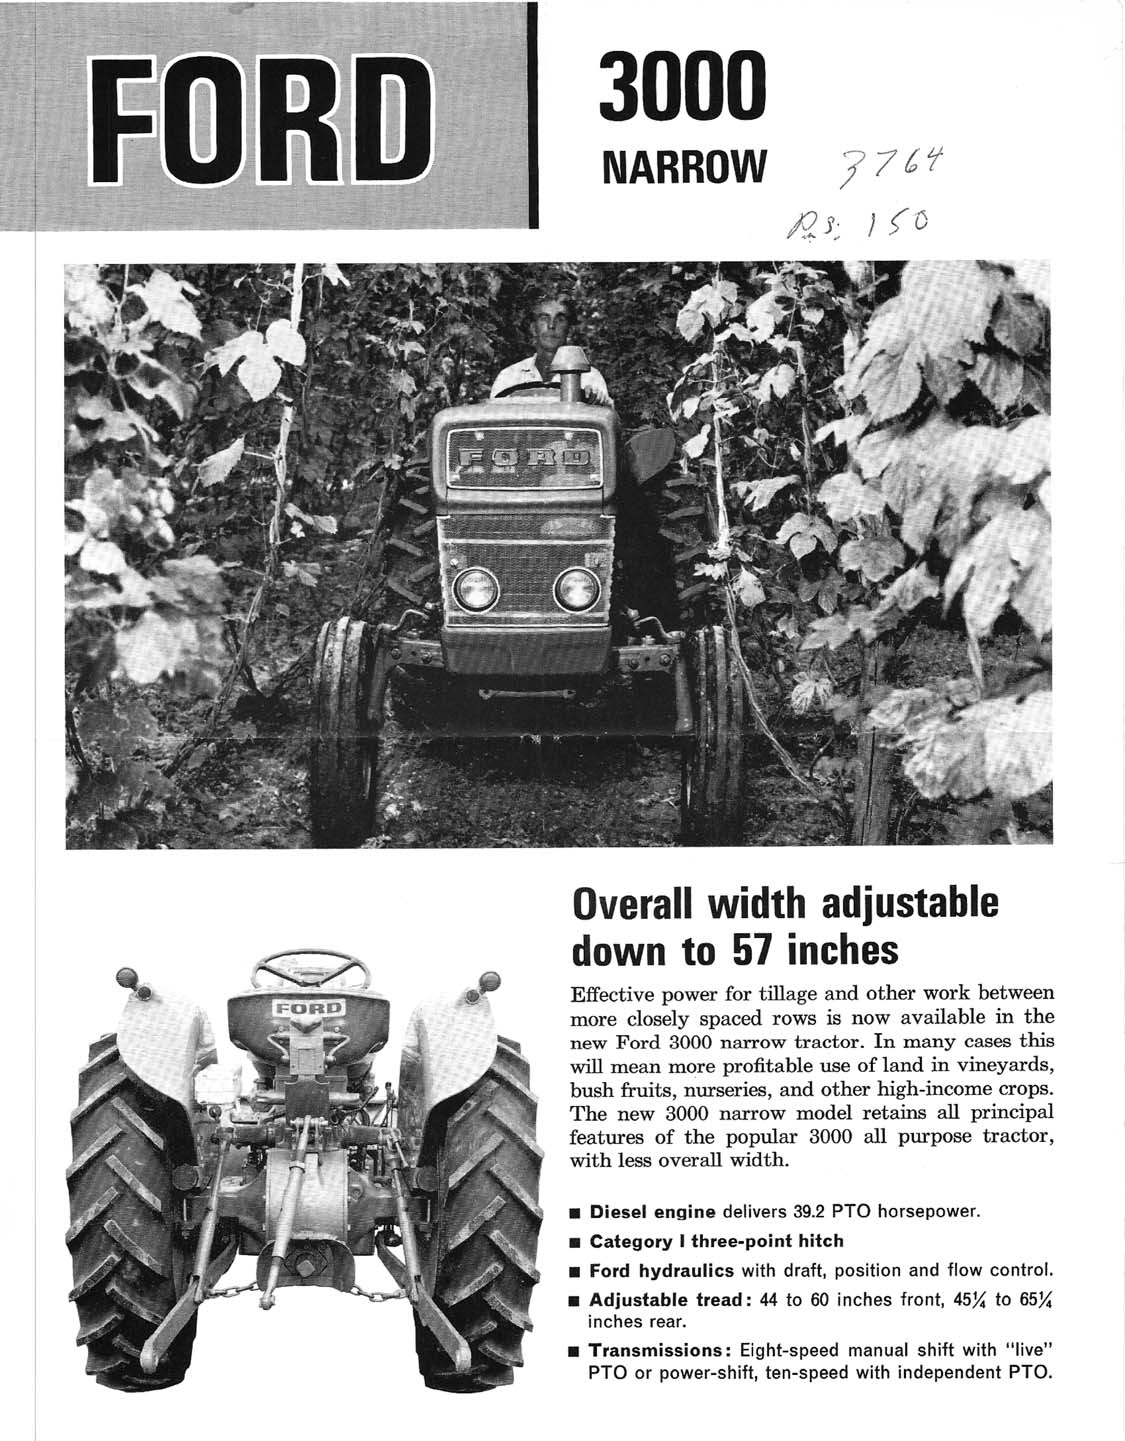 Ford 3000 Tractor Manual Instrument Panel Wiring Diagram Free Picture Narrow Dealer Ad Brochure 1125x1441